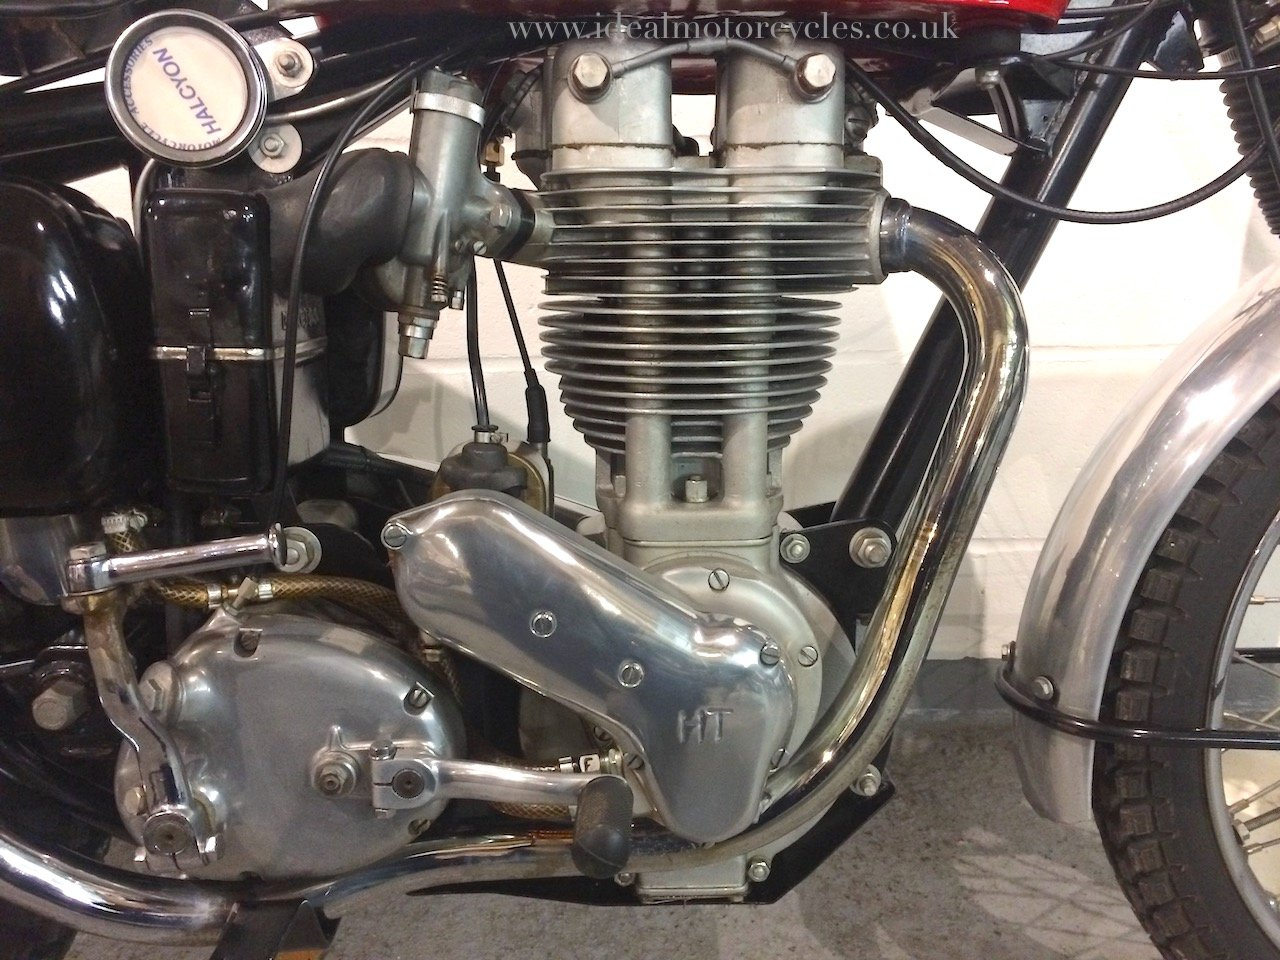 1957 Ariel HT5 500cc For Sale (picture 4 of 8)